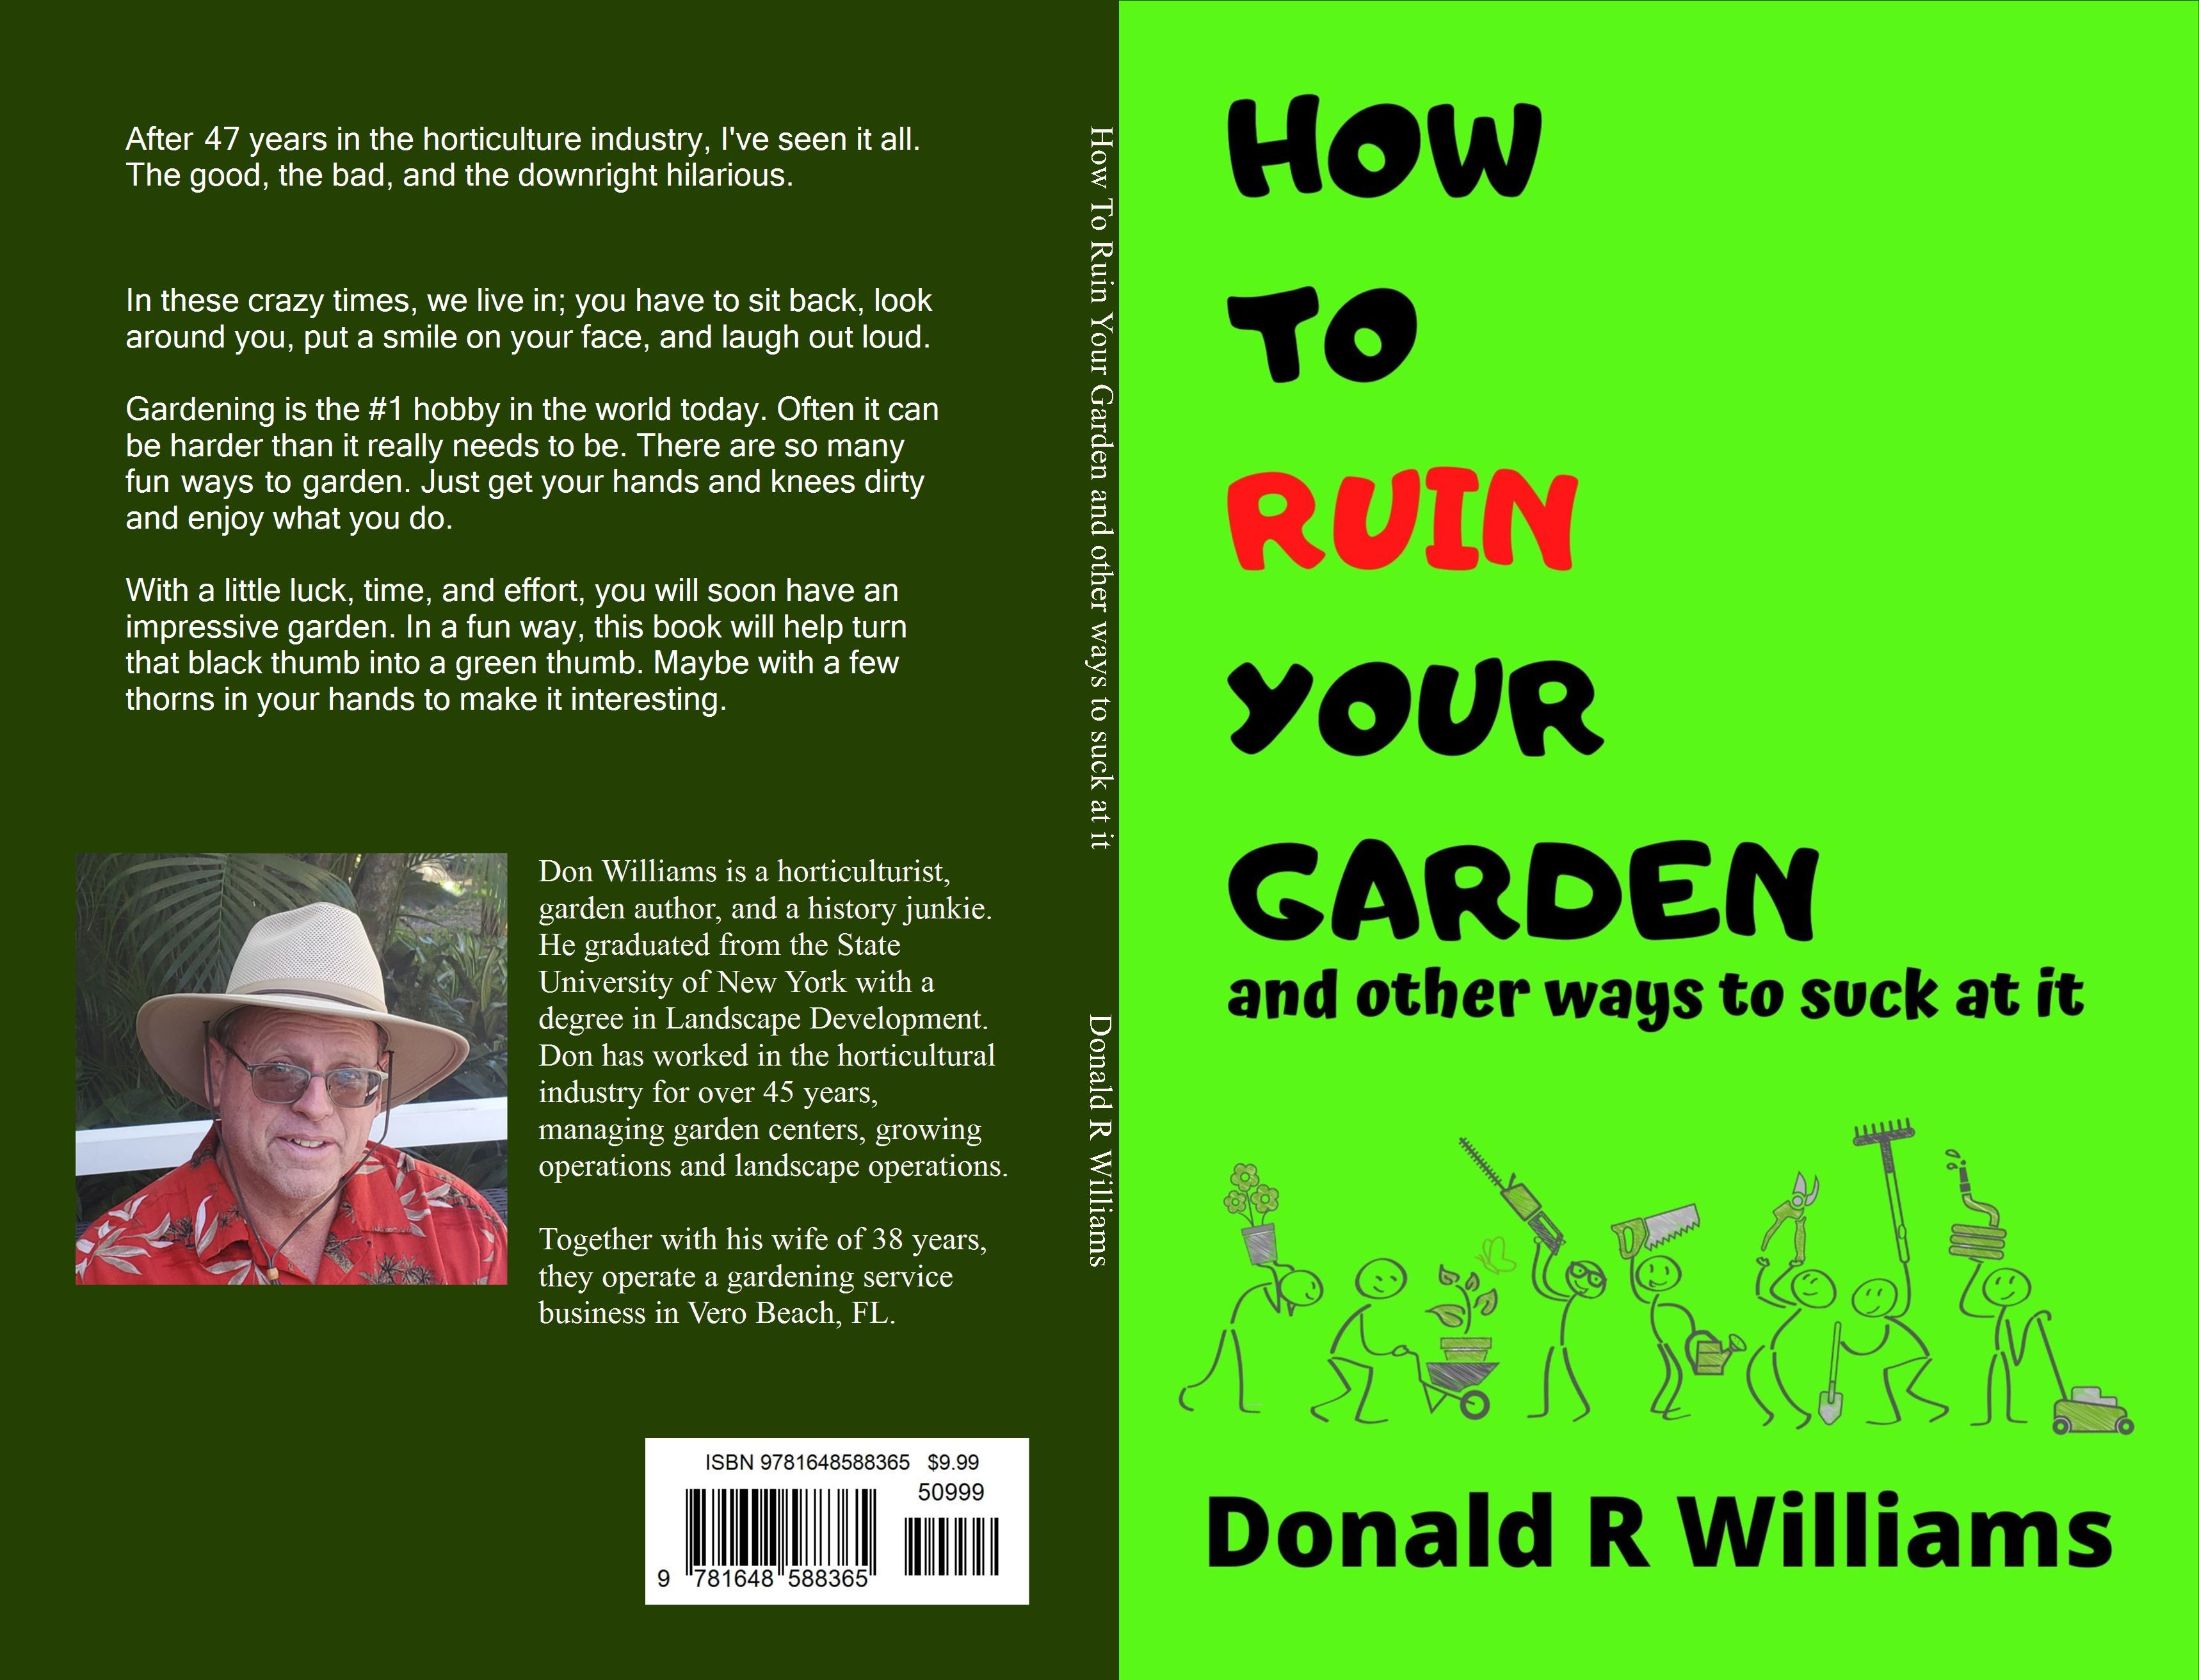 How To Ruin Your Garden and other ways to suck at it cover image